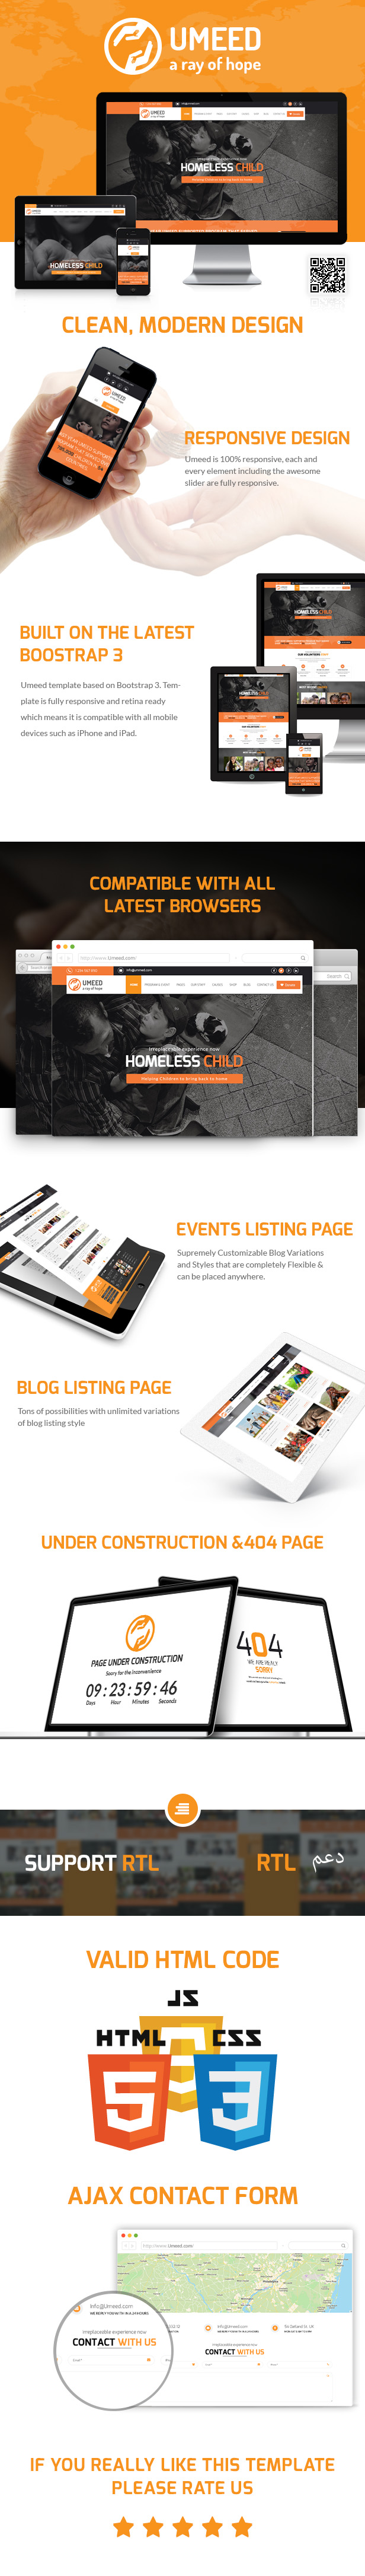 Umeed A Ray of Hope Html5 Theme